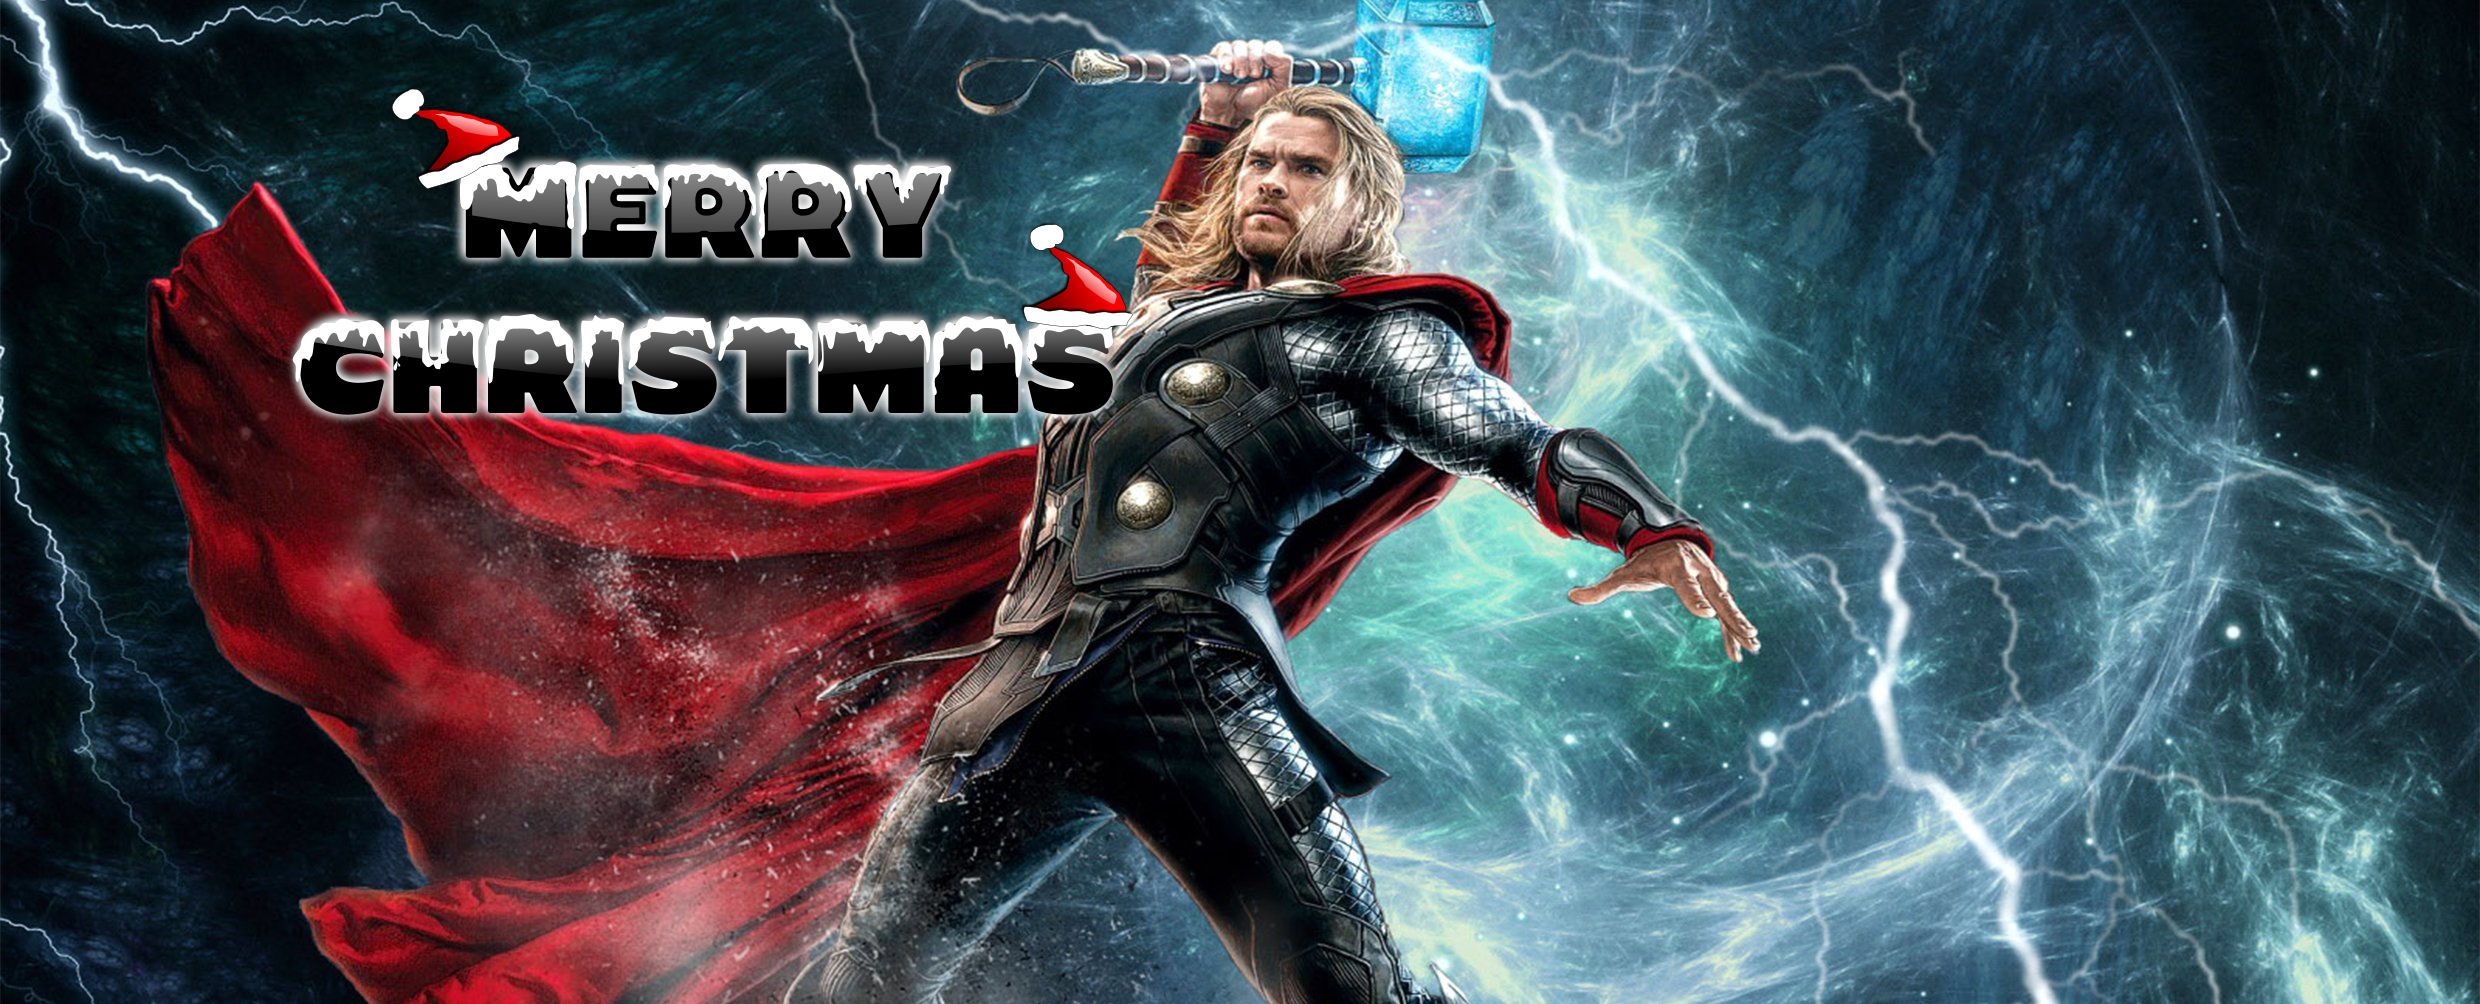 Thor Wallpapers Page 3